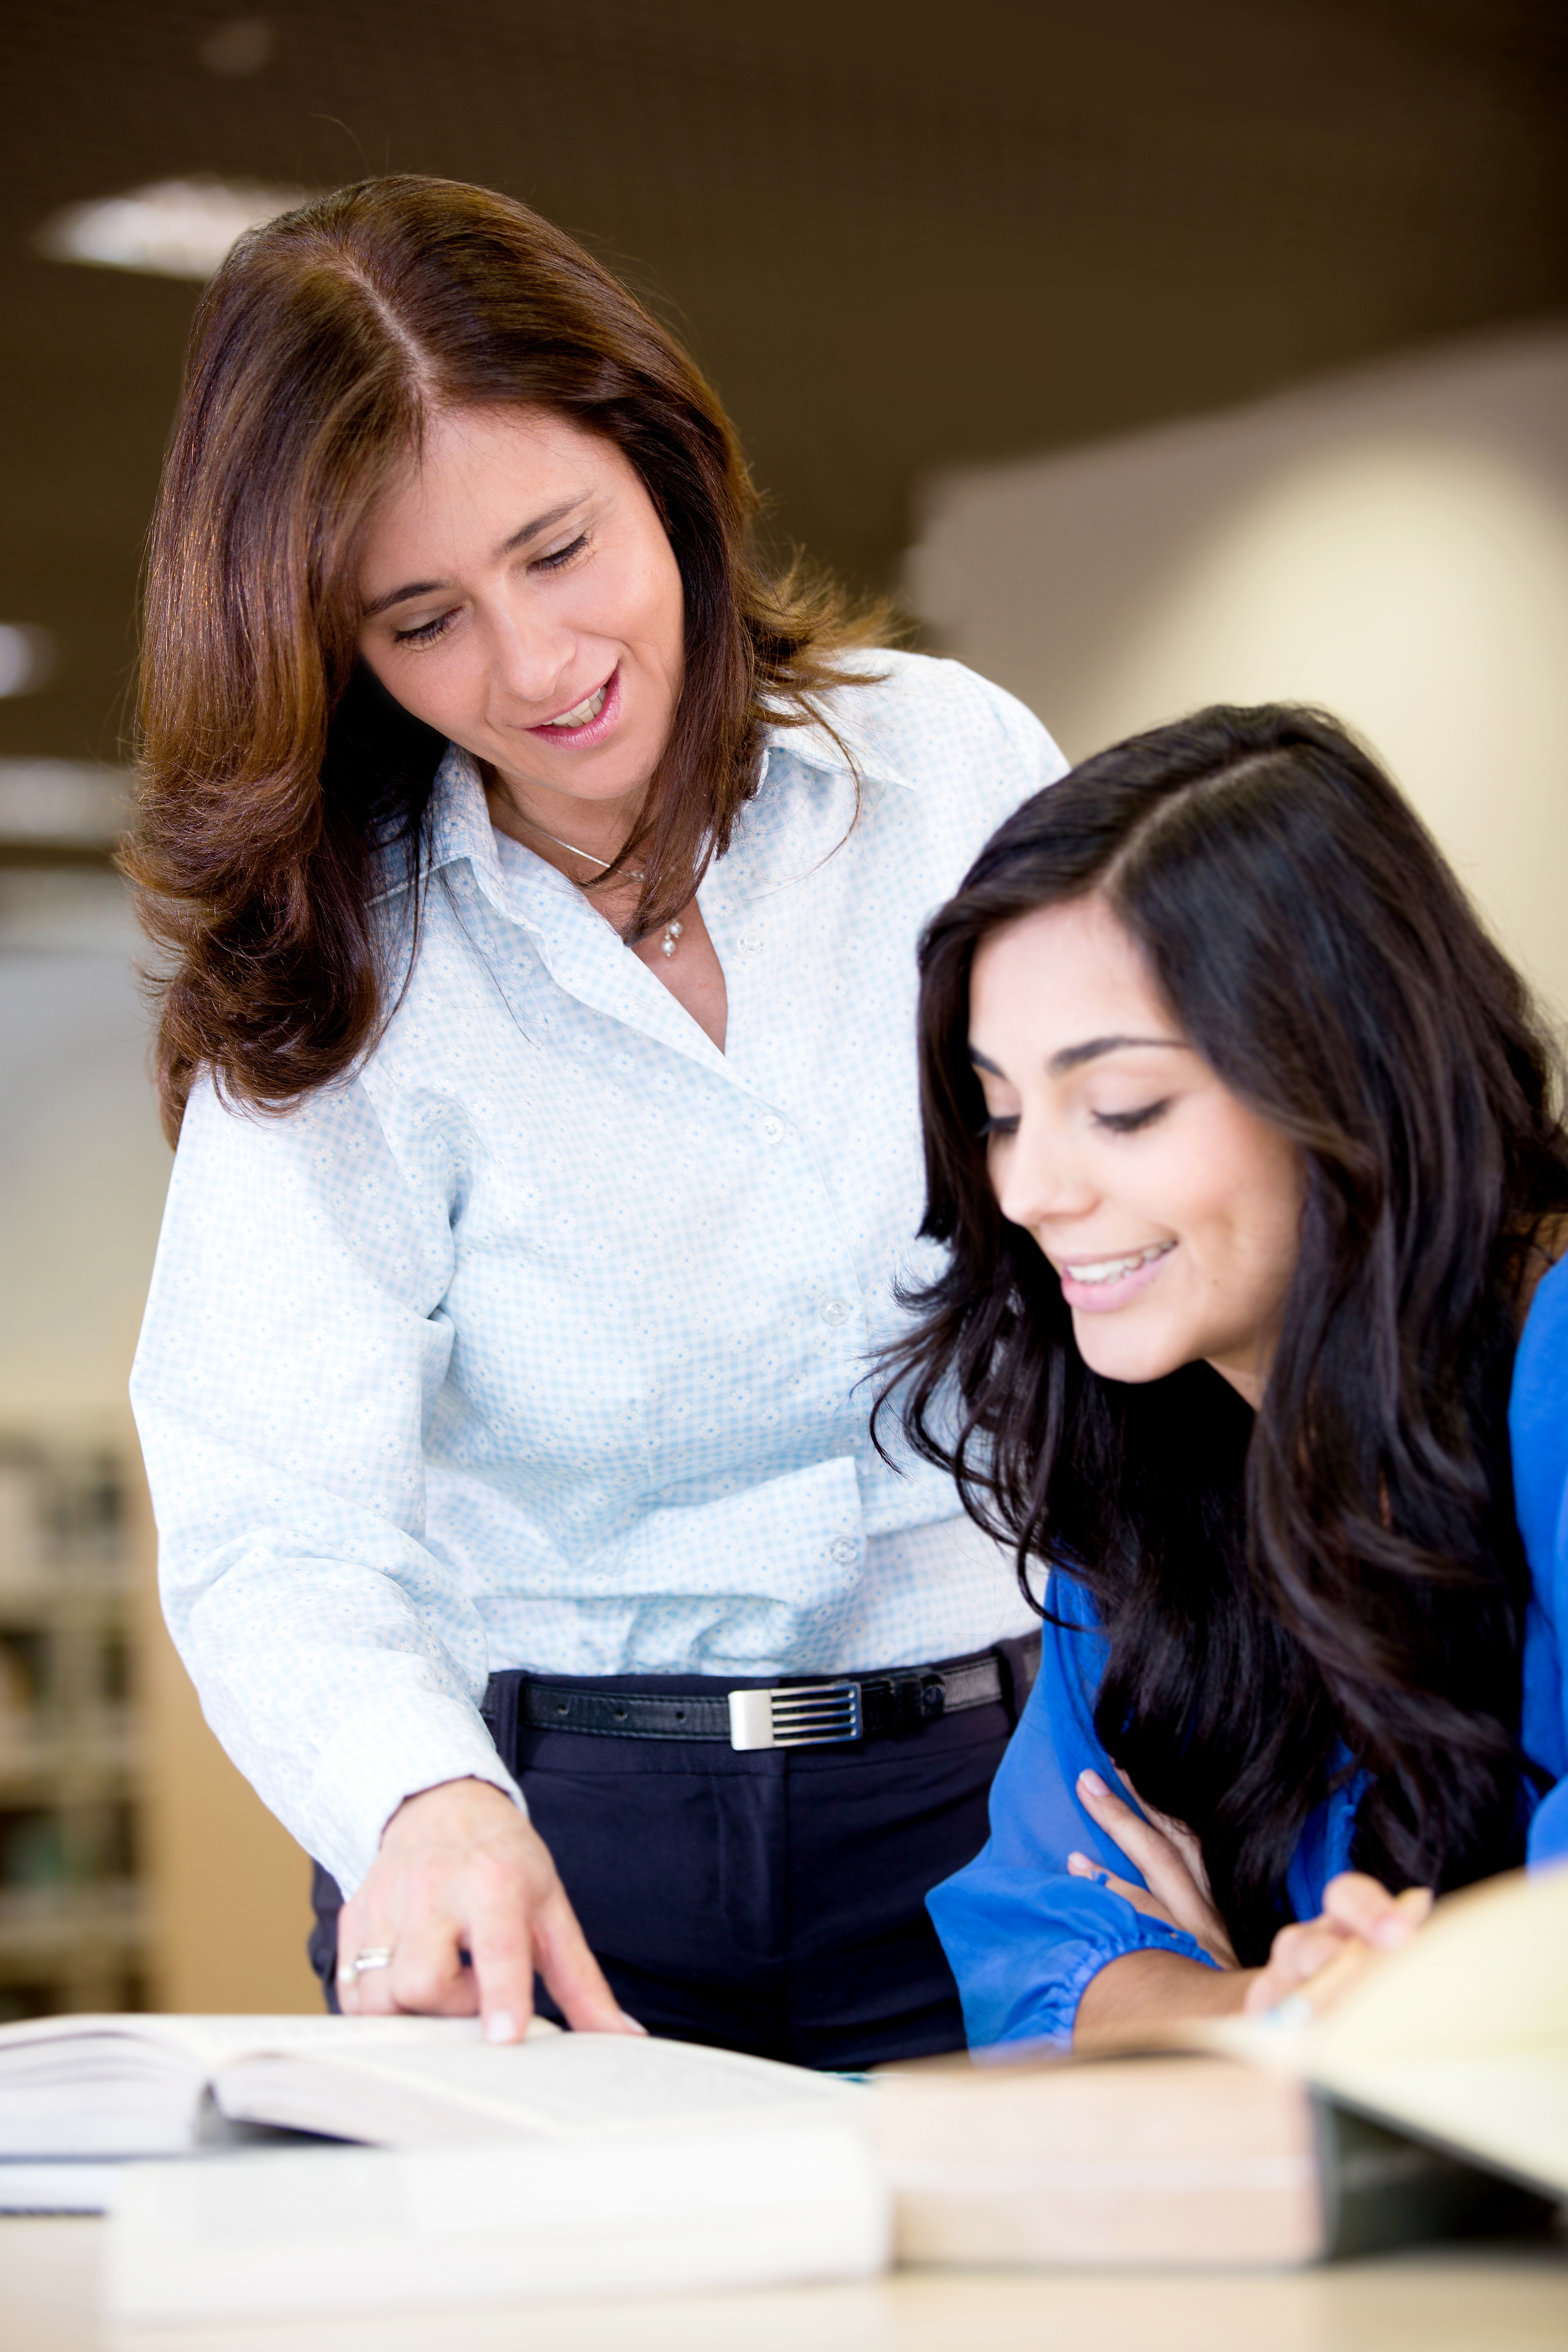 counselor role in special education The role of school counselors in serving students with disabilities what role do school counselors play in serving students with special education law.